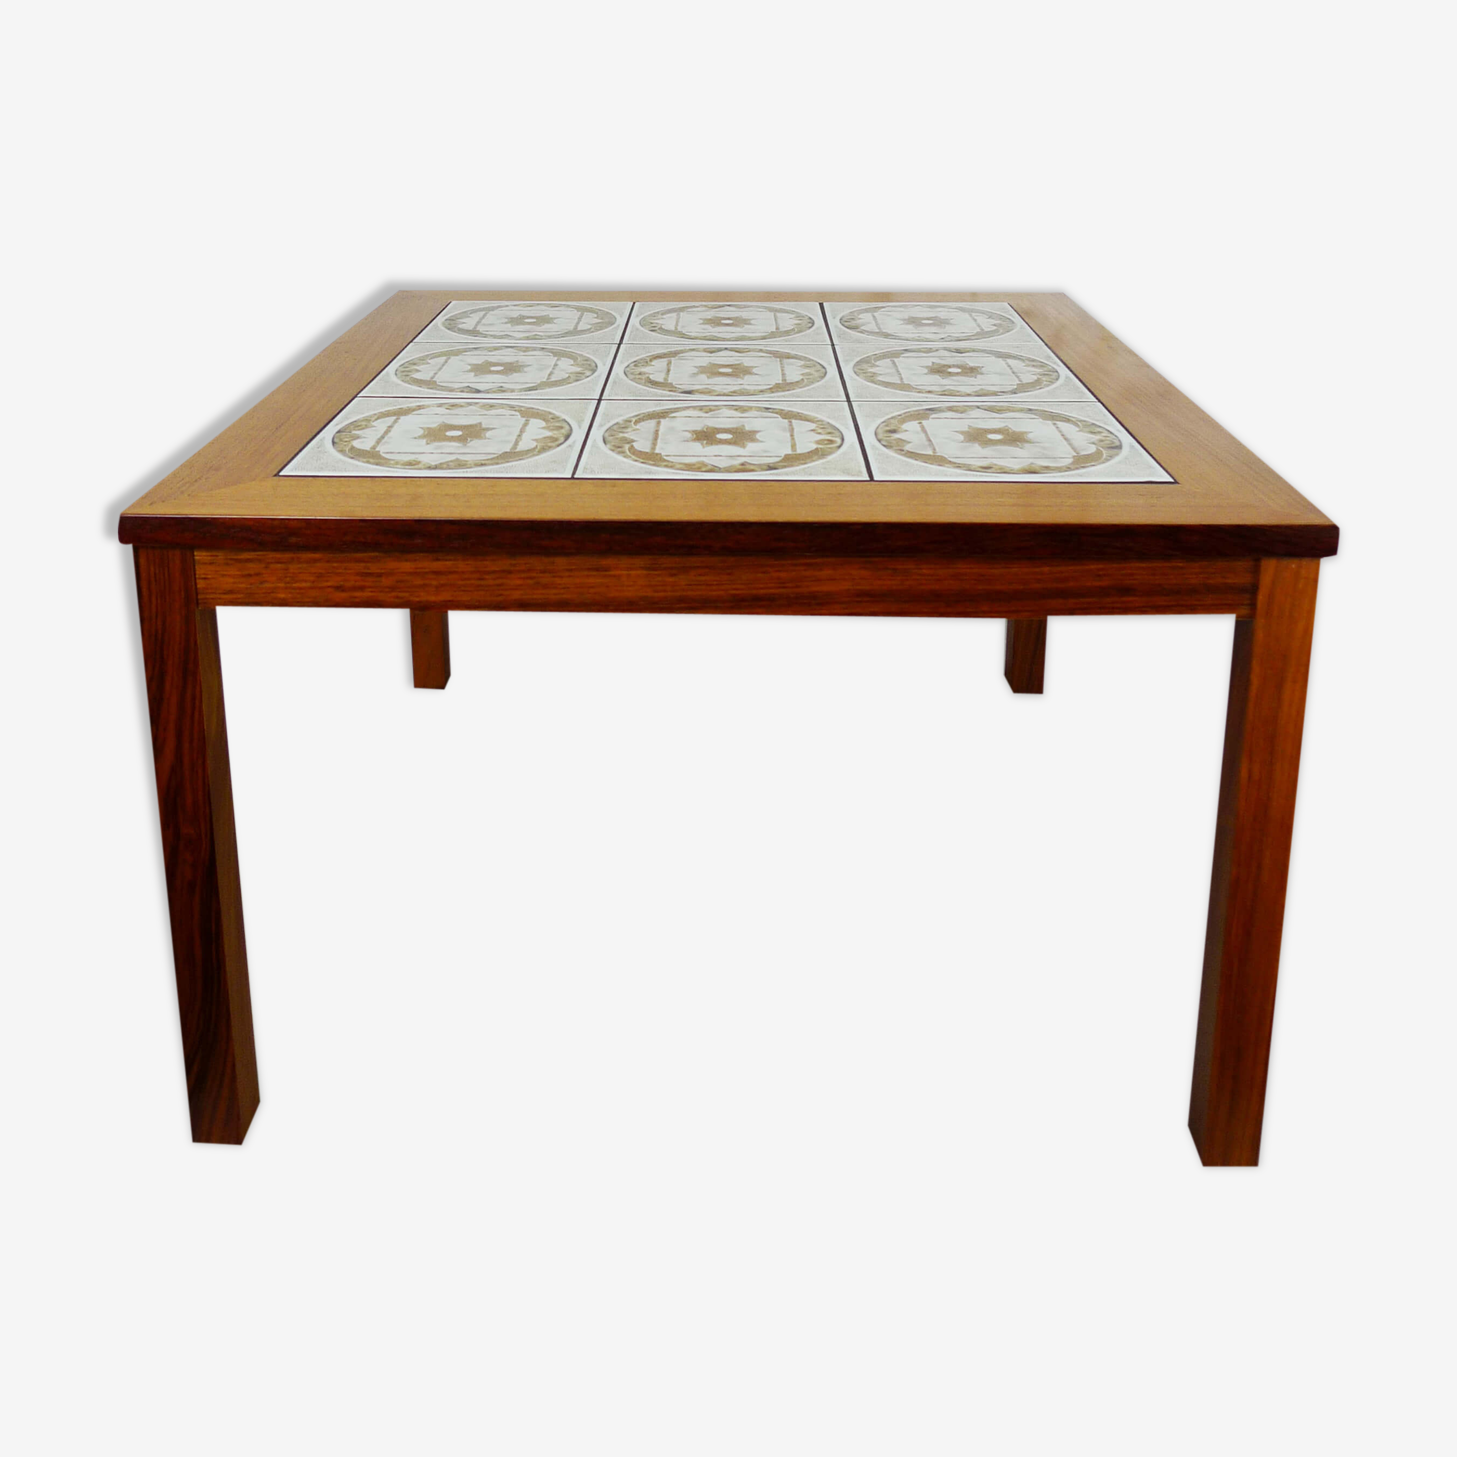 Table in teak with ceramic, Denmark, 1970